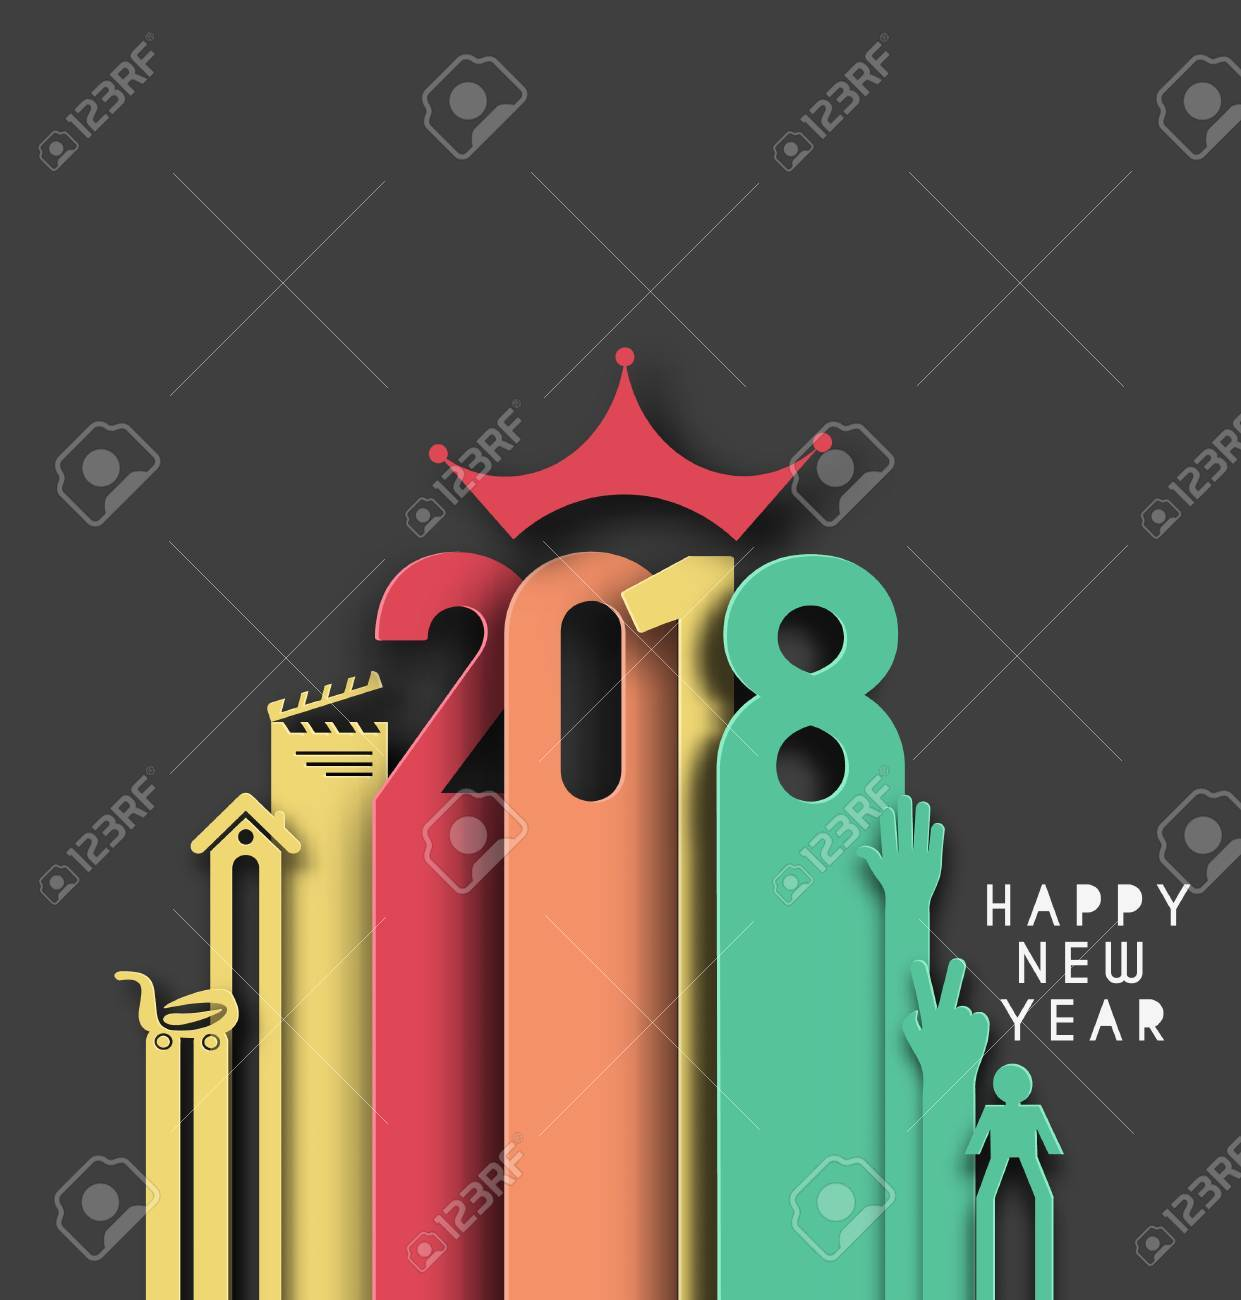 Happy new year 2018 Text Design, Vector illustration. Stock Vector - 89472616